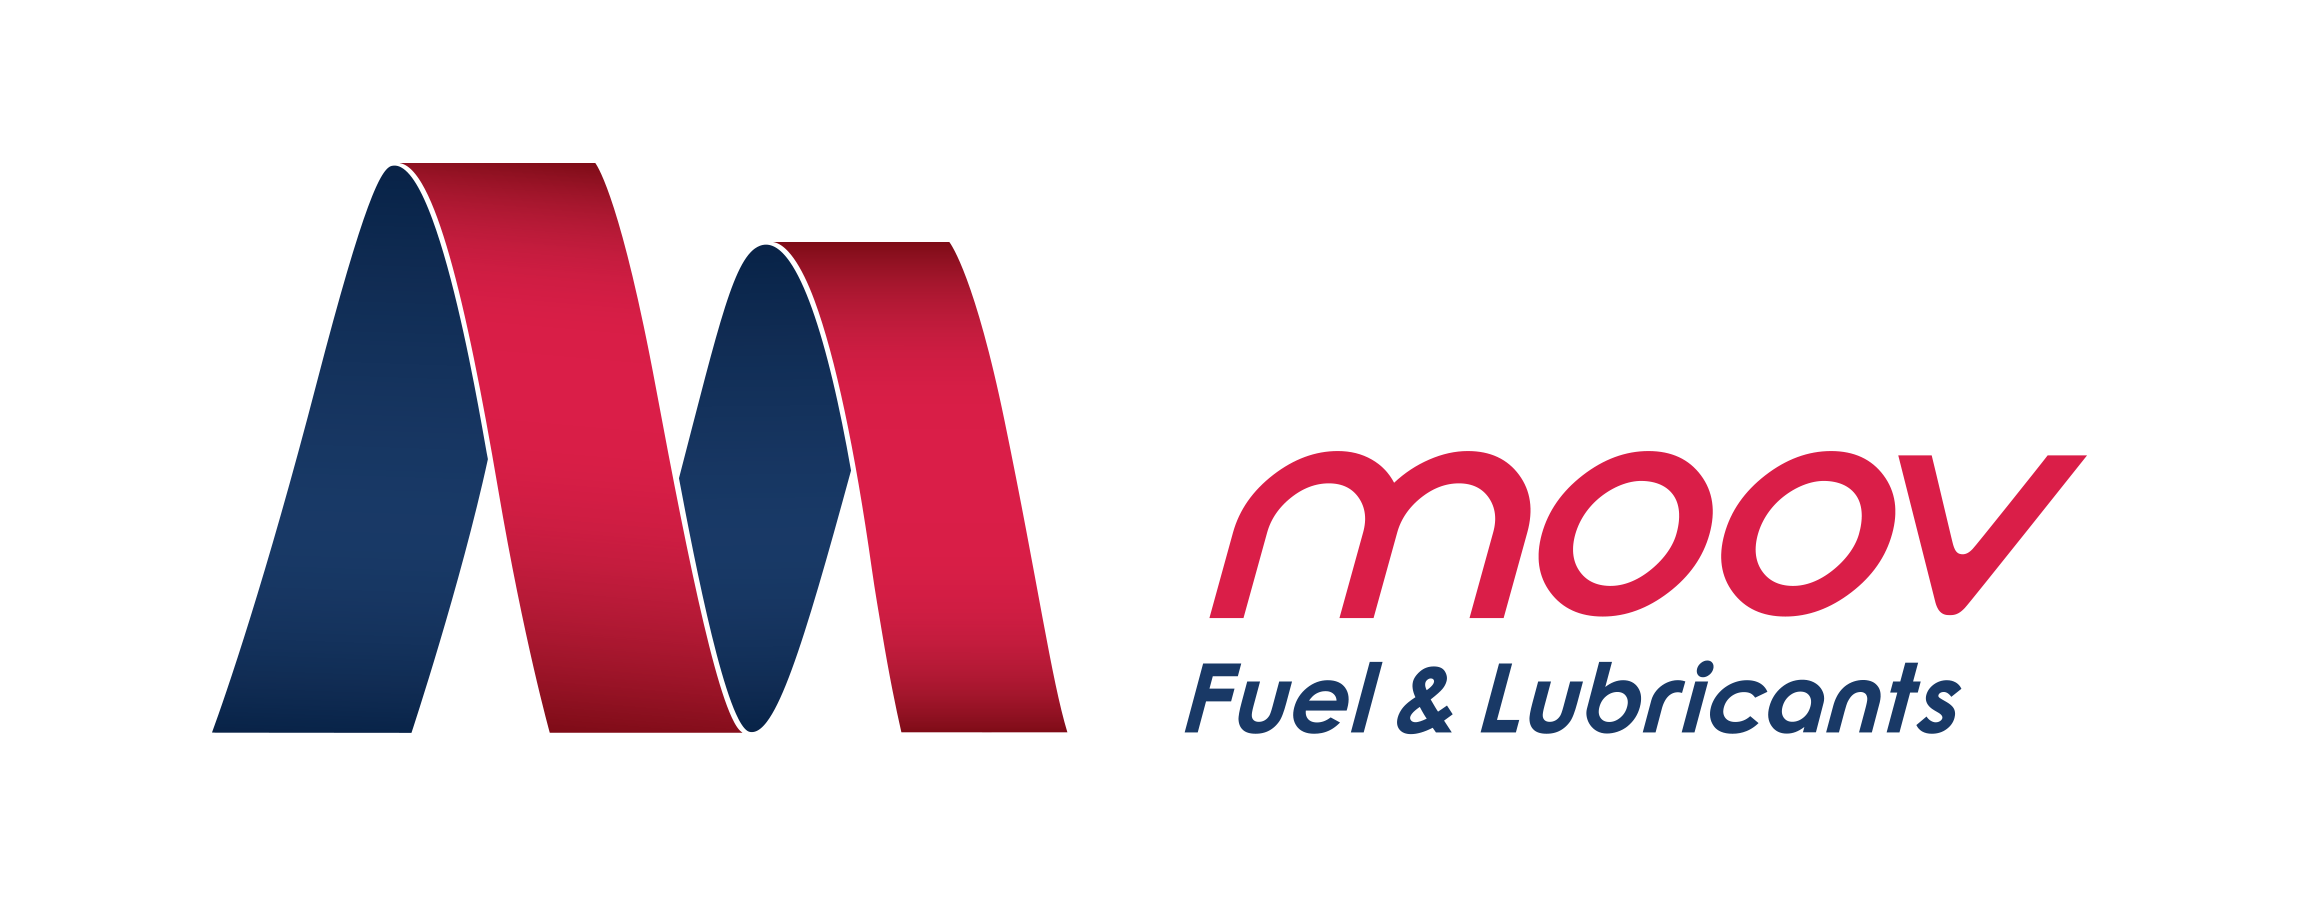 Moov Fuel - lubricants, oil, lubrications, fuel, diesel, petrol, fuel, petroleum, lubricating, major brands, energy, fueled, lubricator